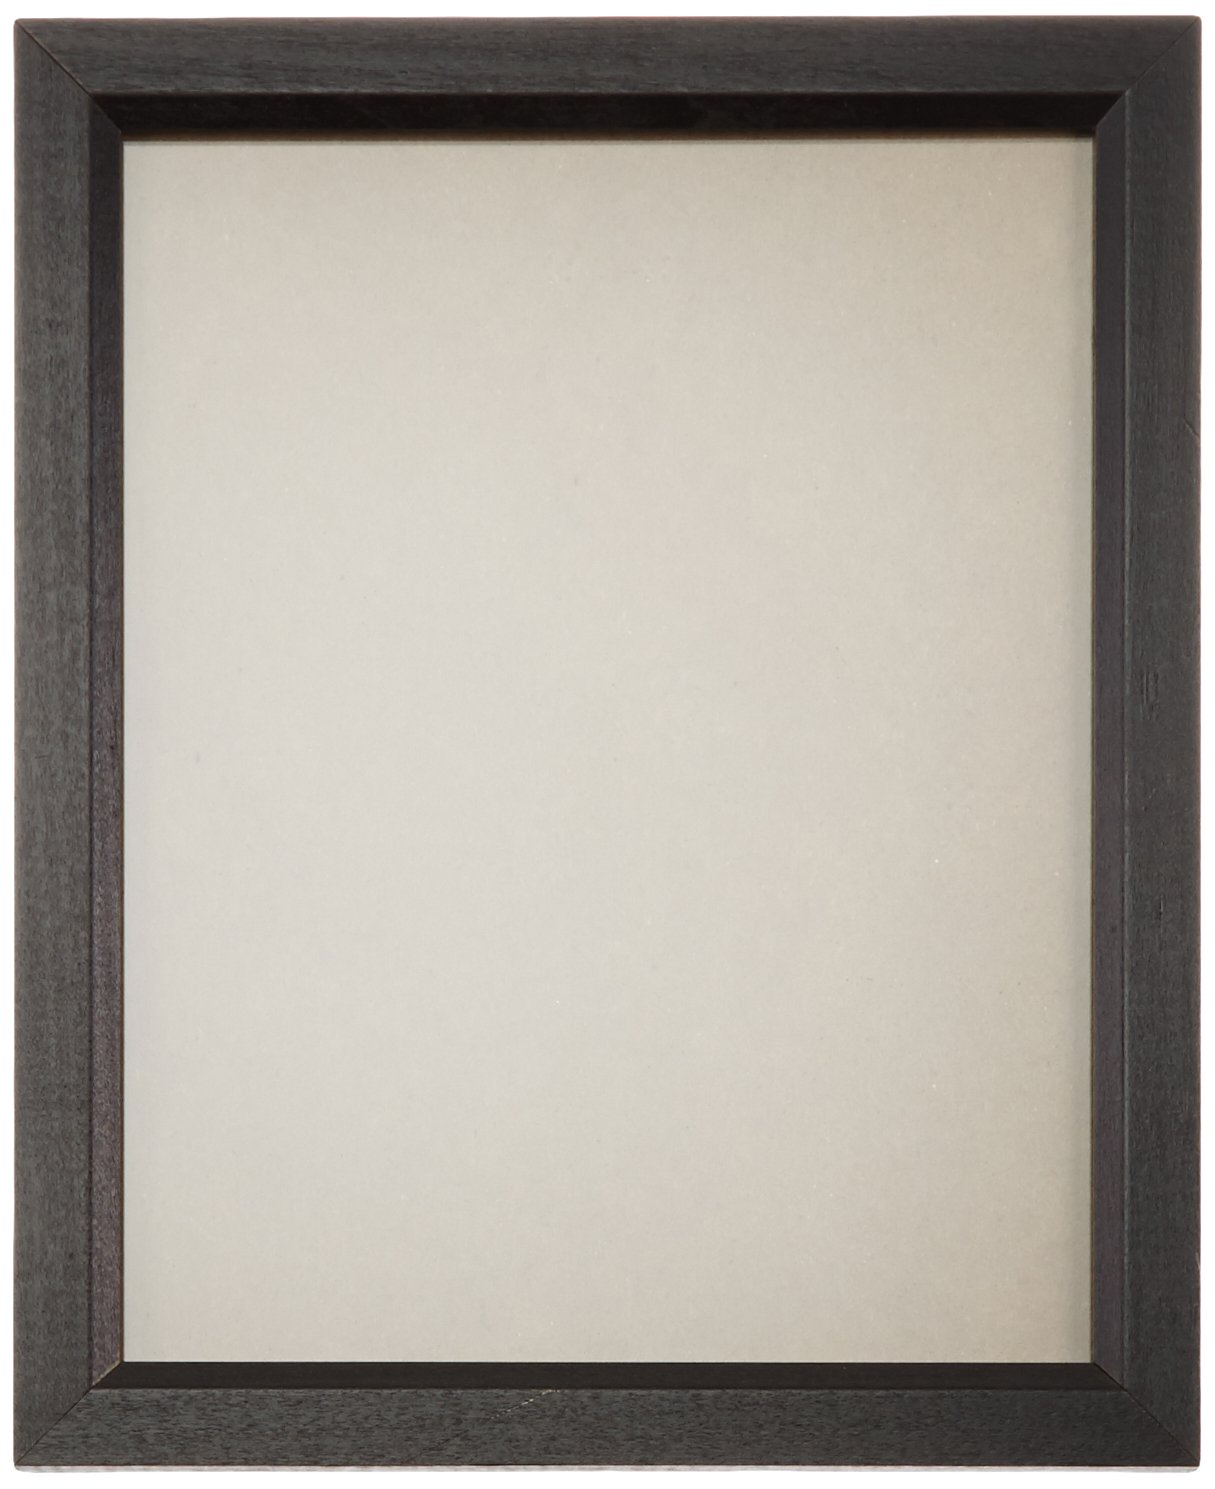 Amazon.com - 24x24 Picture/Poster Frame, Wood Grain Finish, 0.825 ...